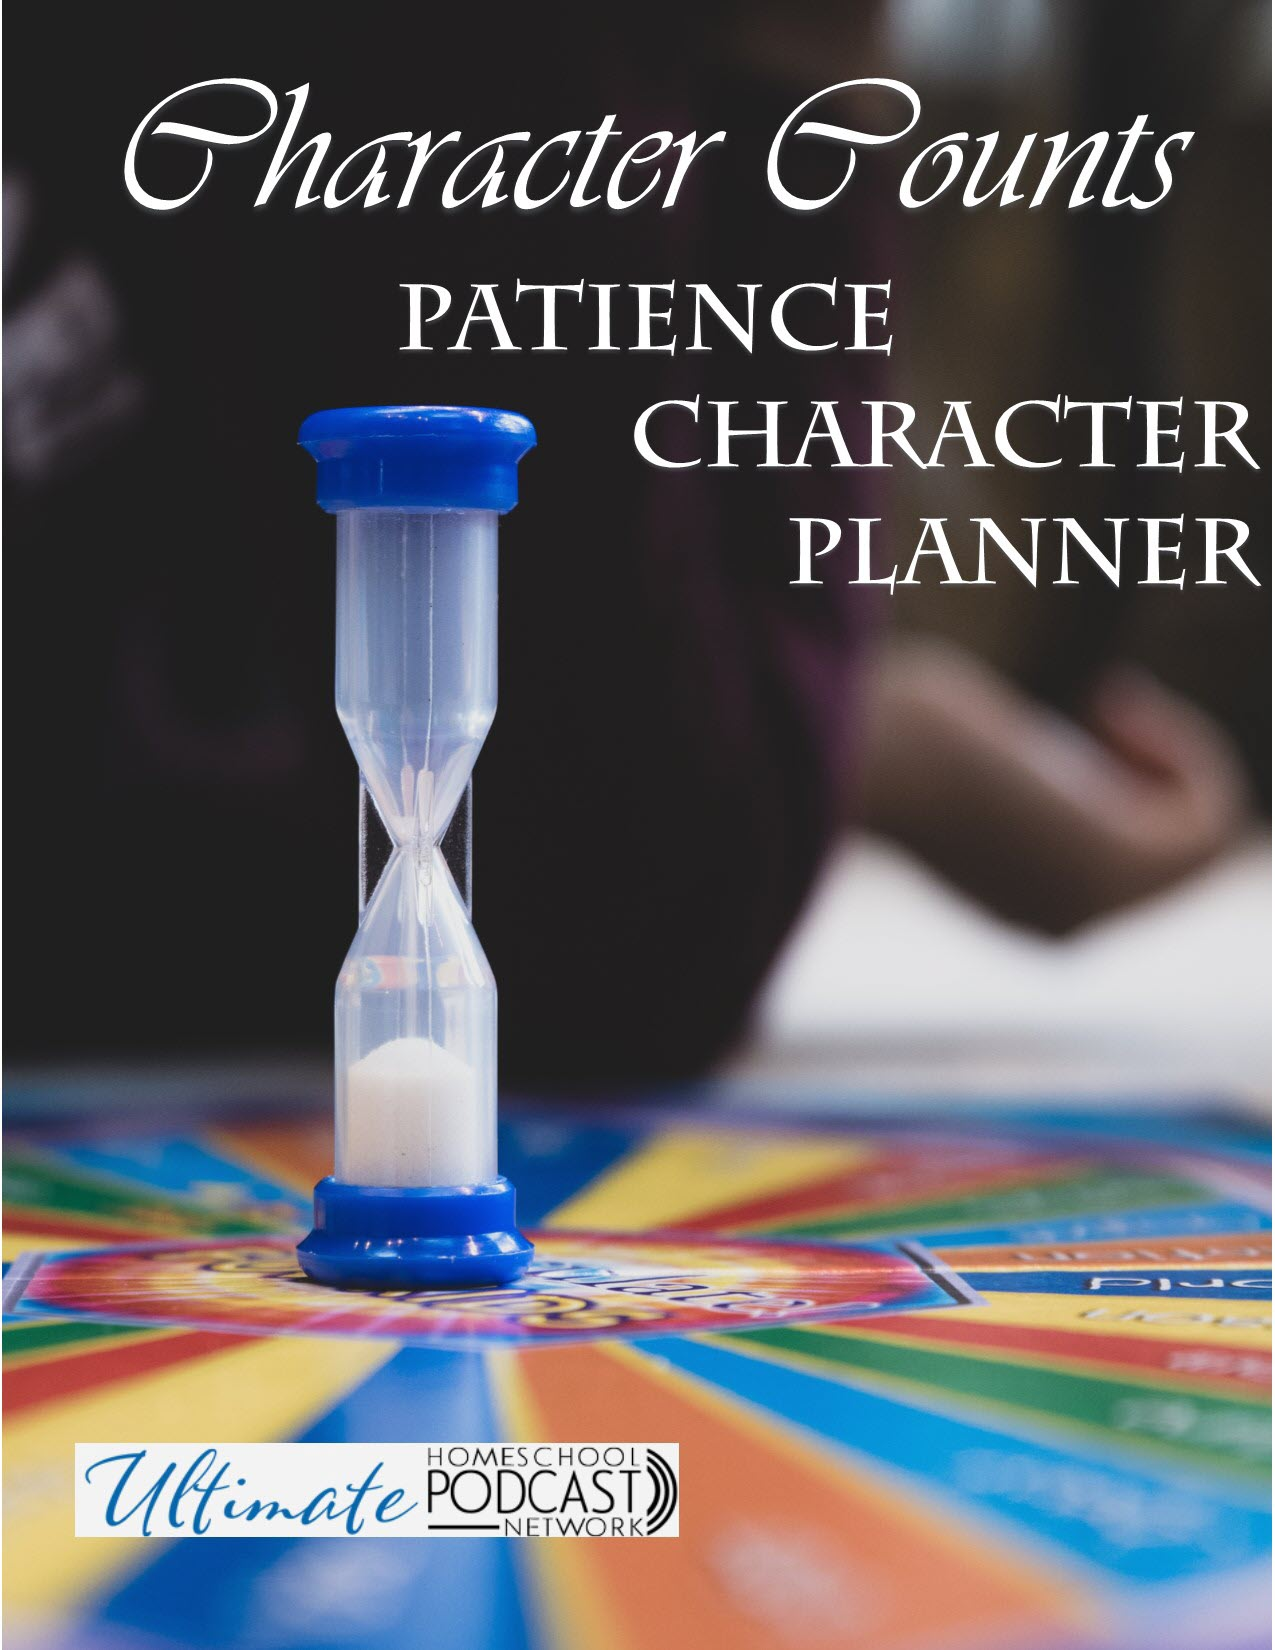 character counts: patience character planner text with image of hour glass on a board game.